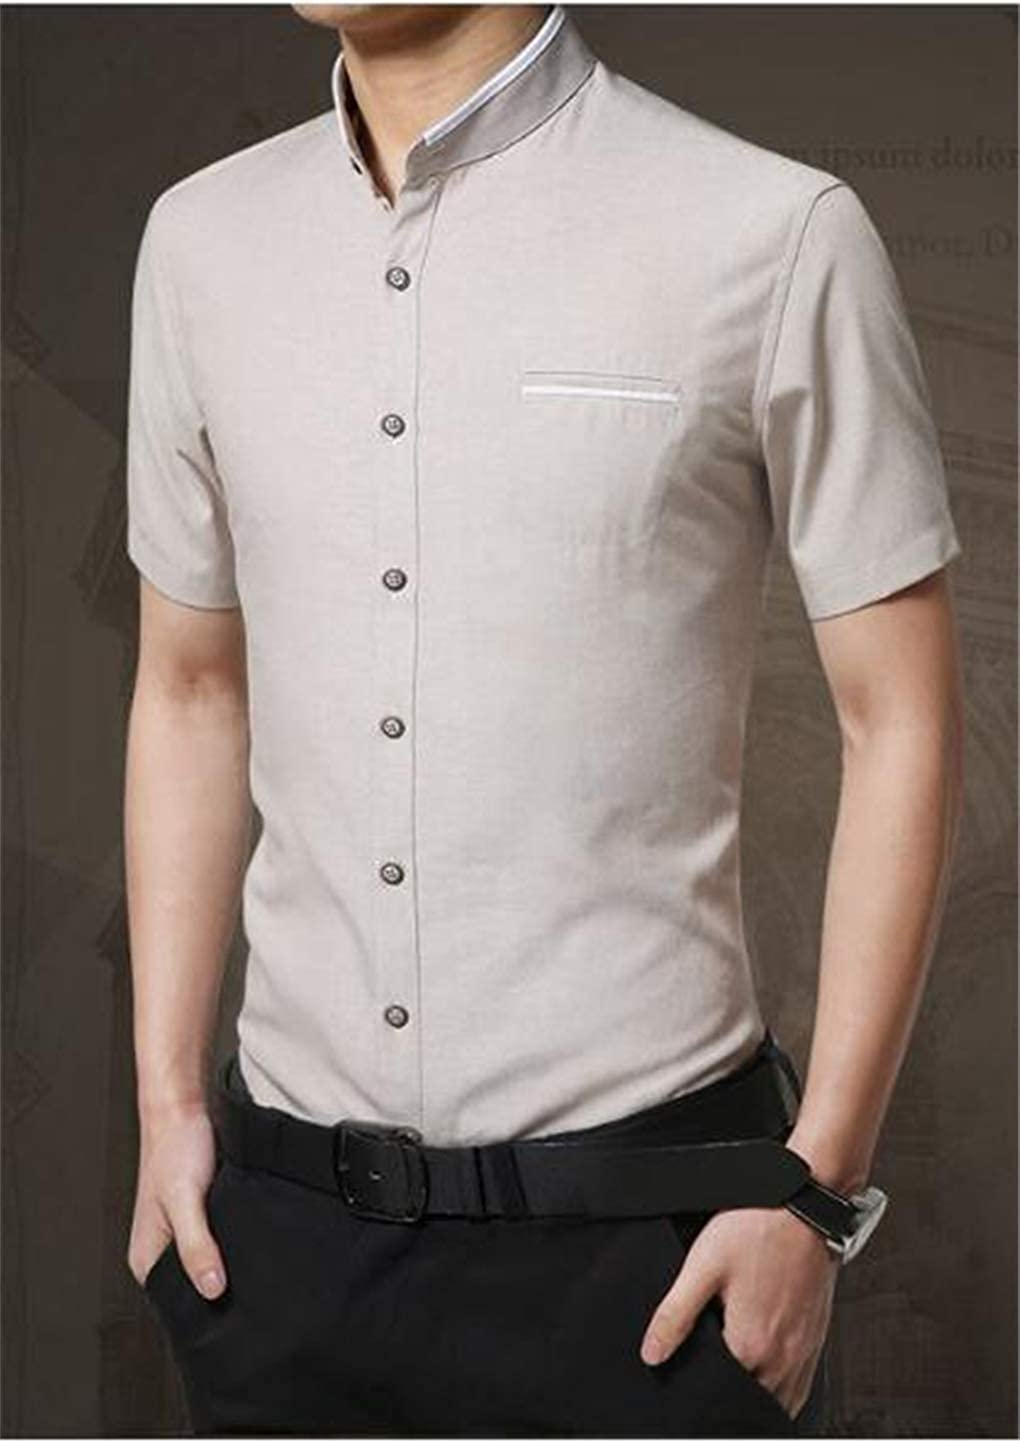 Summer Thin Shirt Business Casual hot Stand Collar for Men